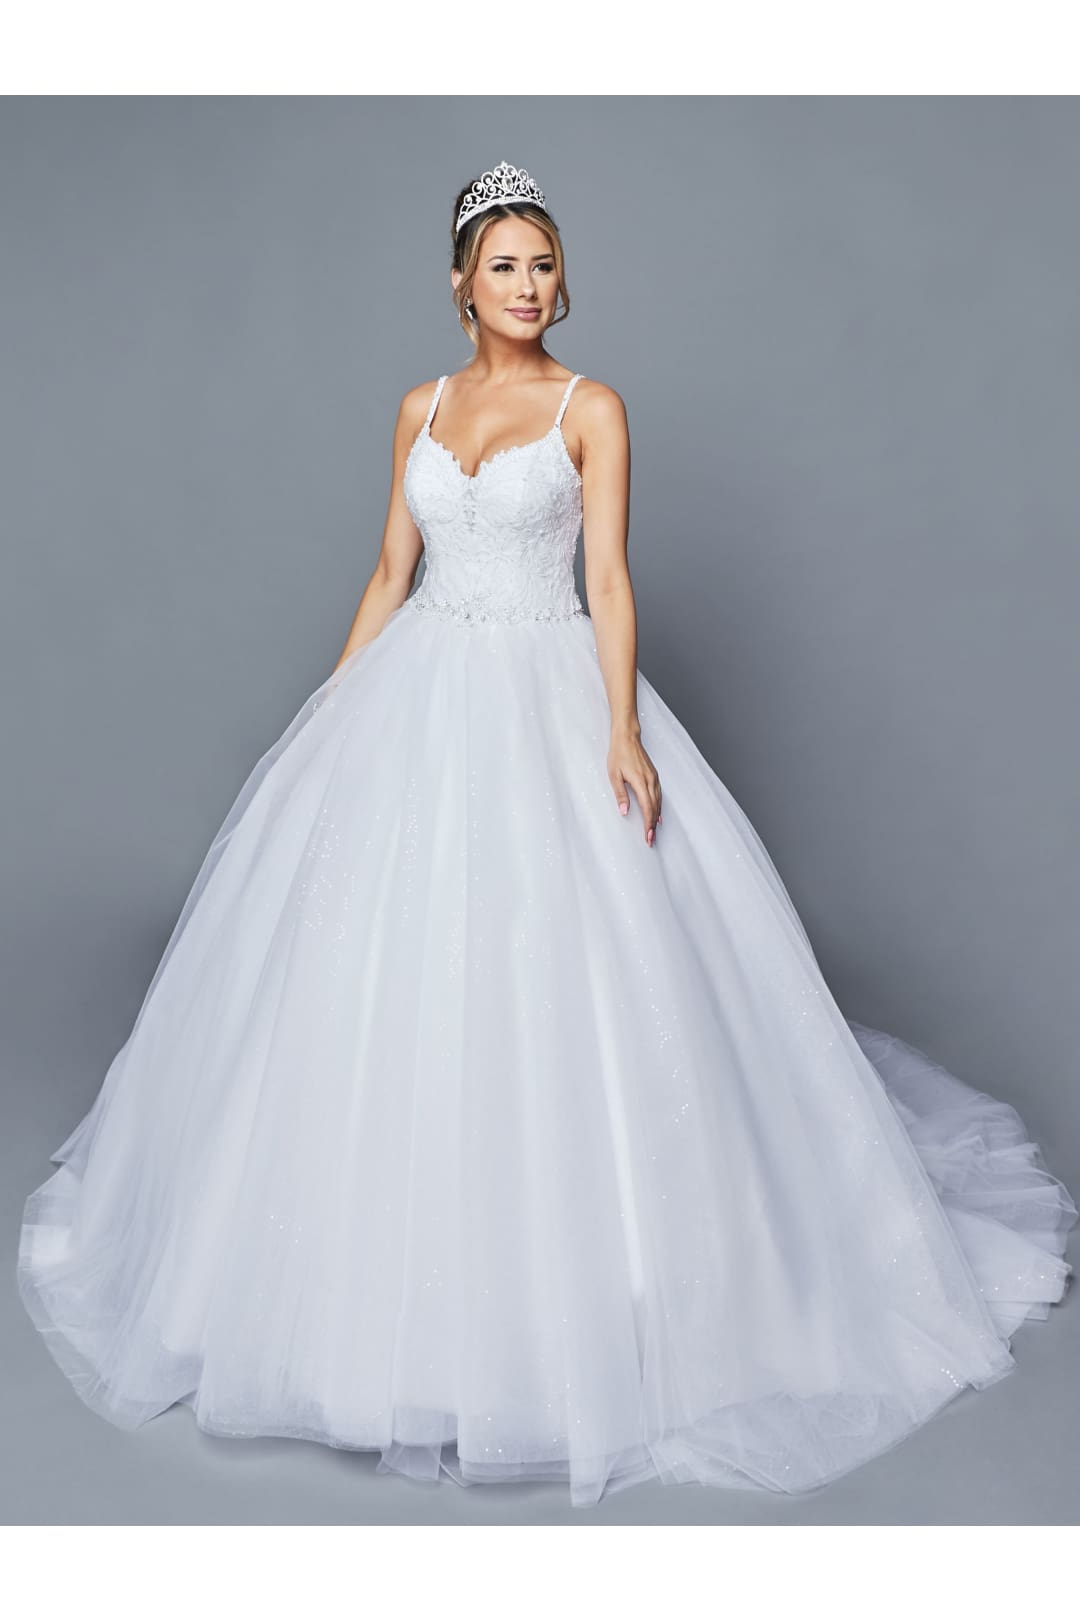 Elegant Wedding Ball Gown With Train - WHITE / XS